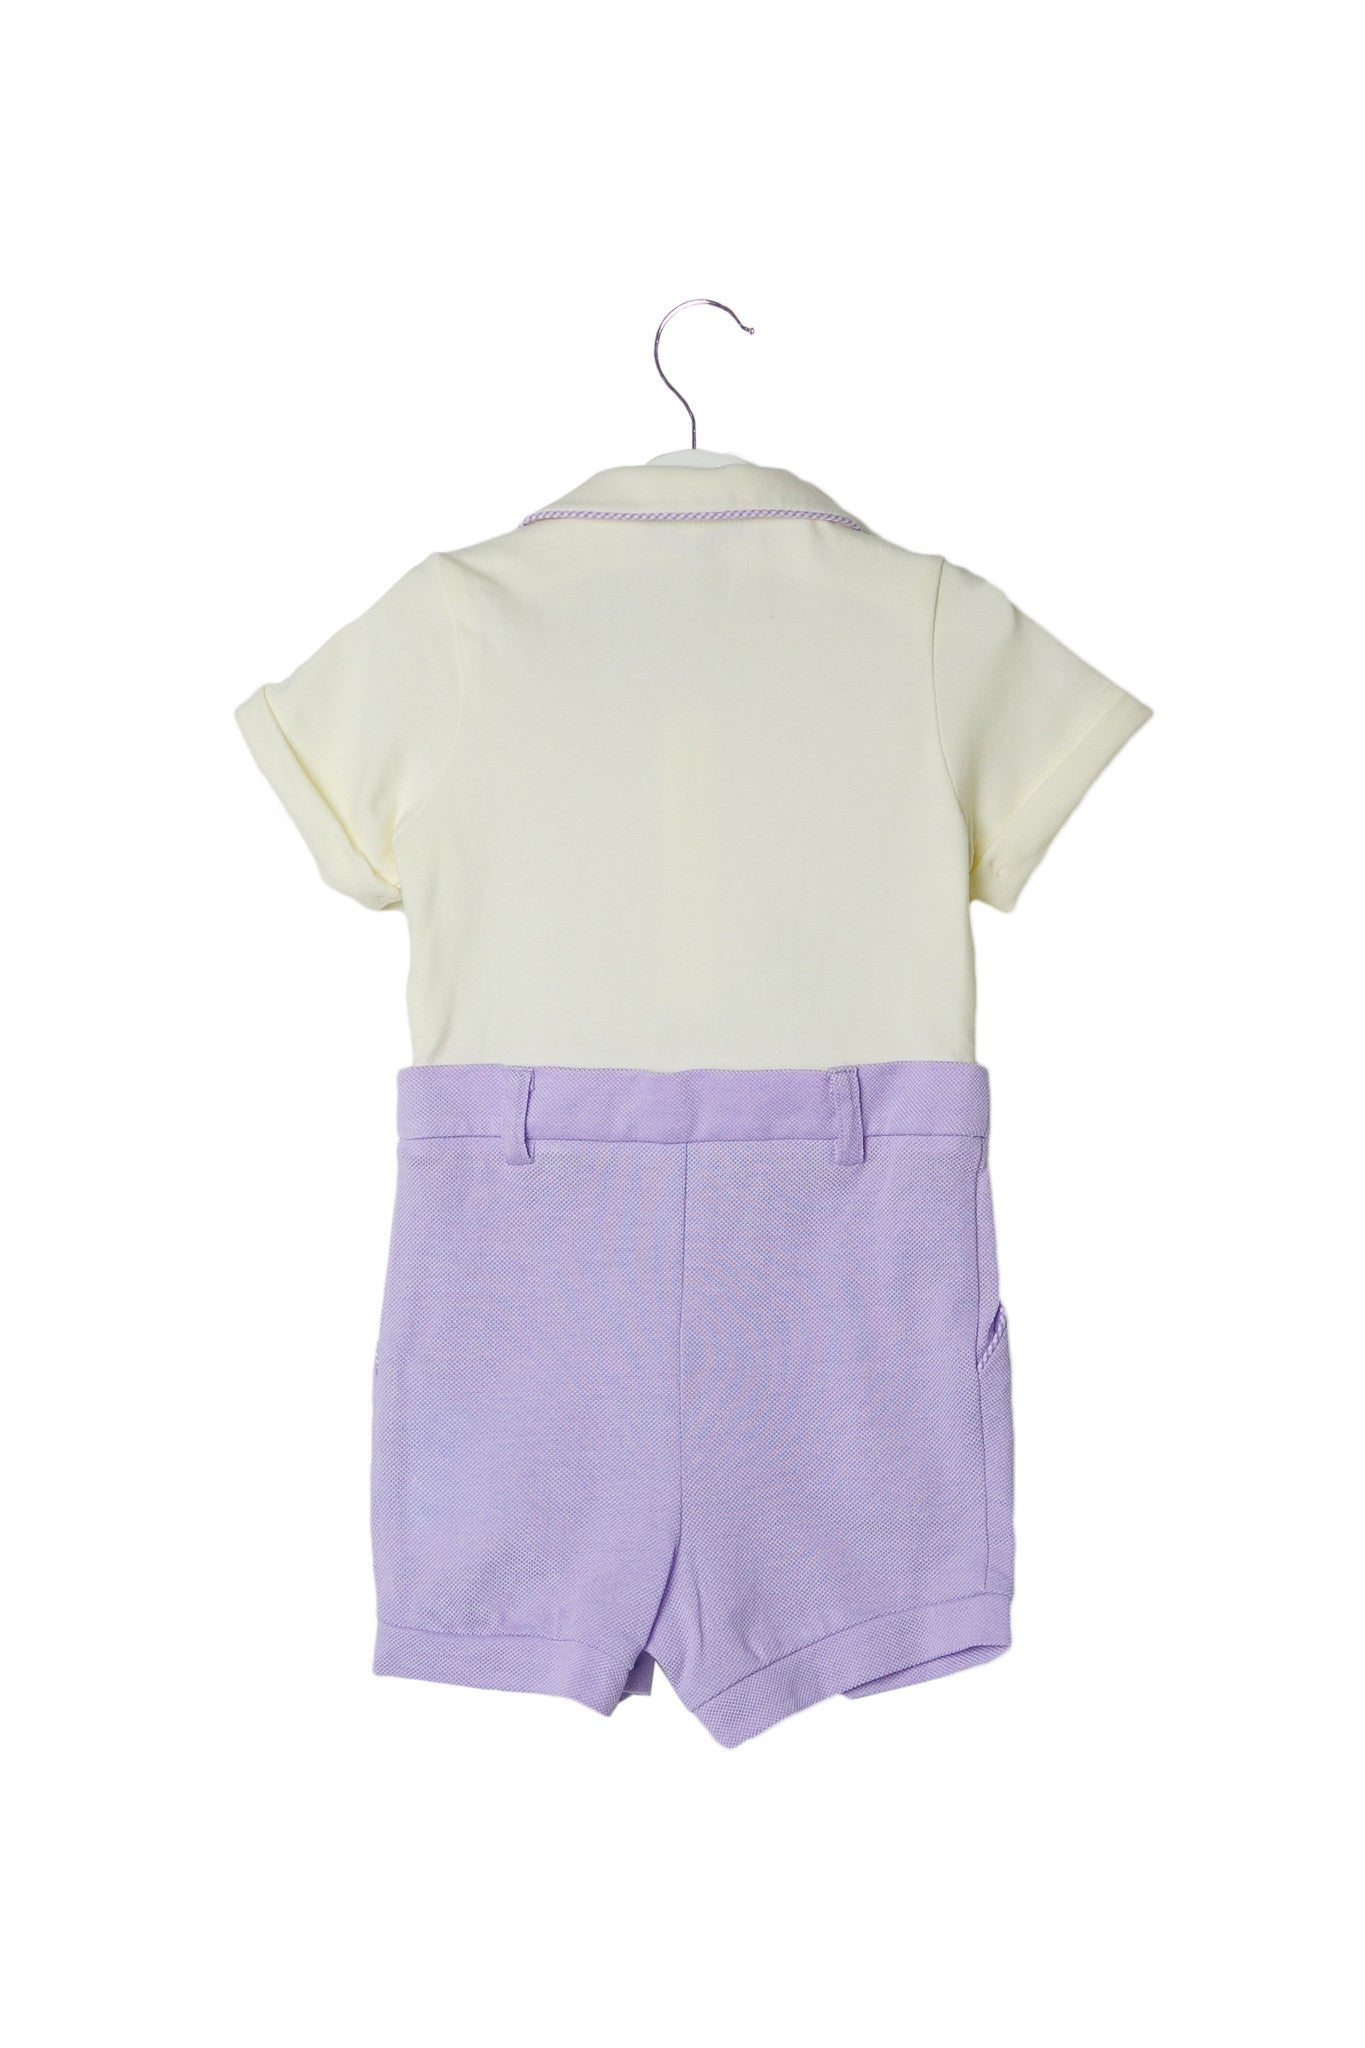 10002745 Nicholas & Bears Baby~Romper 3M at Retykle